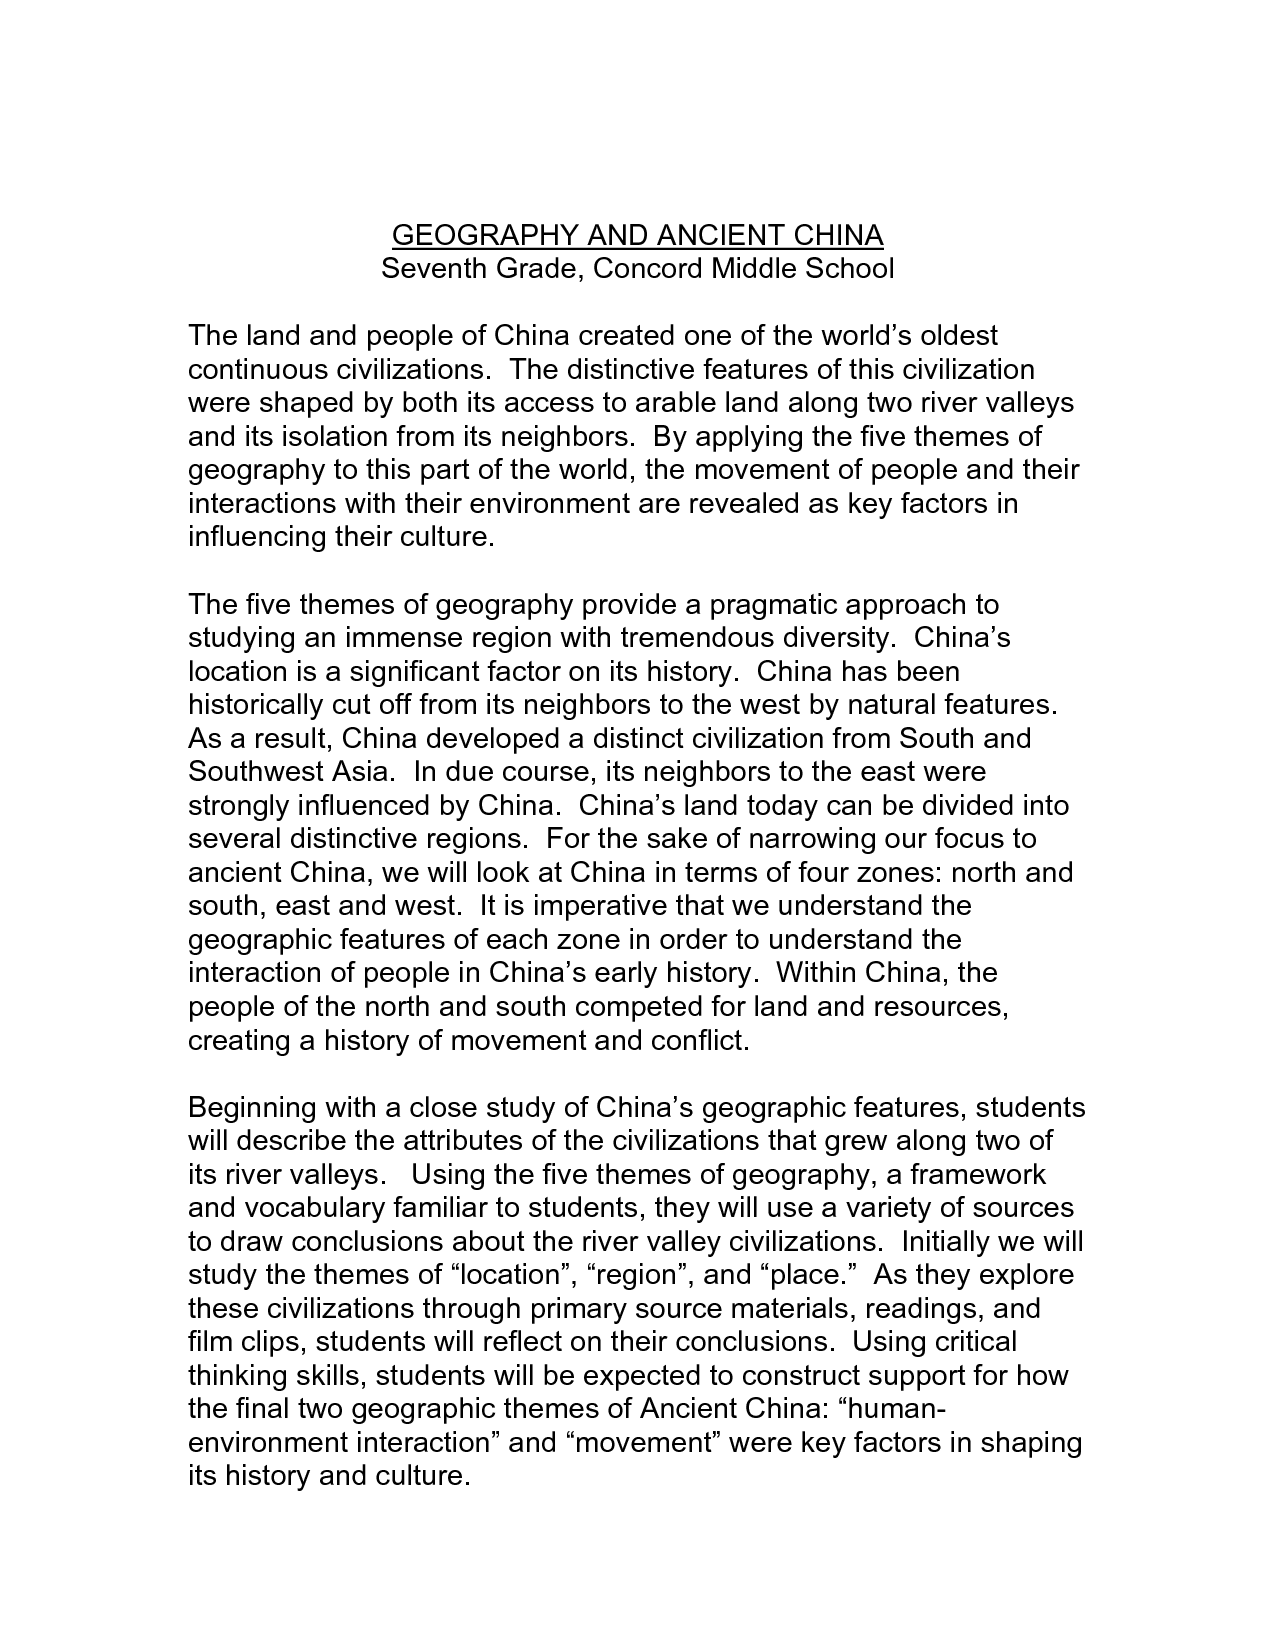 5 Themes Of Geography For China 18 Best Images Of Five Themes Of Geography Worksheets 5